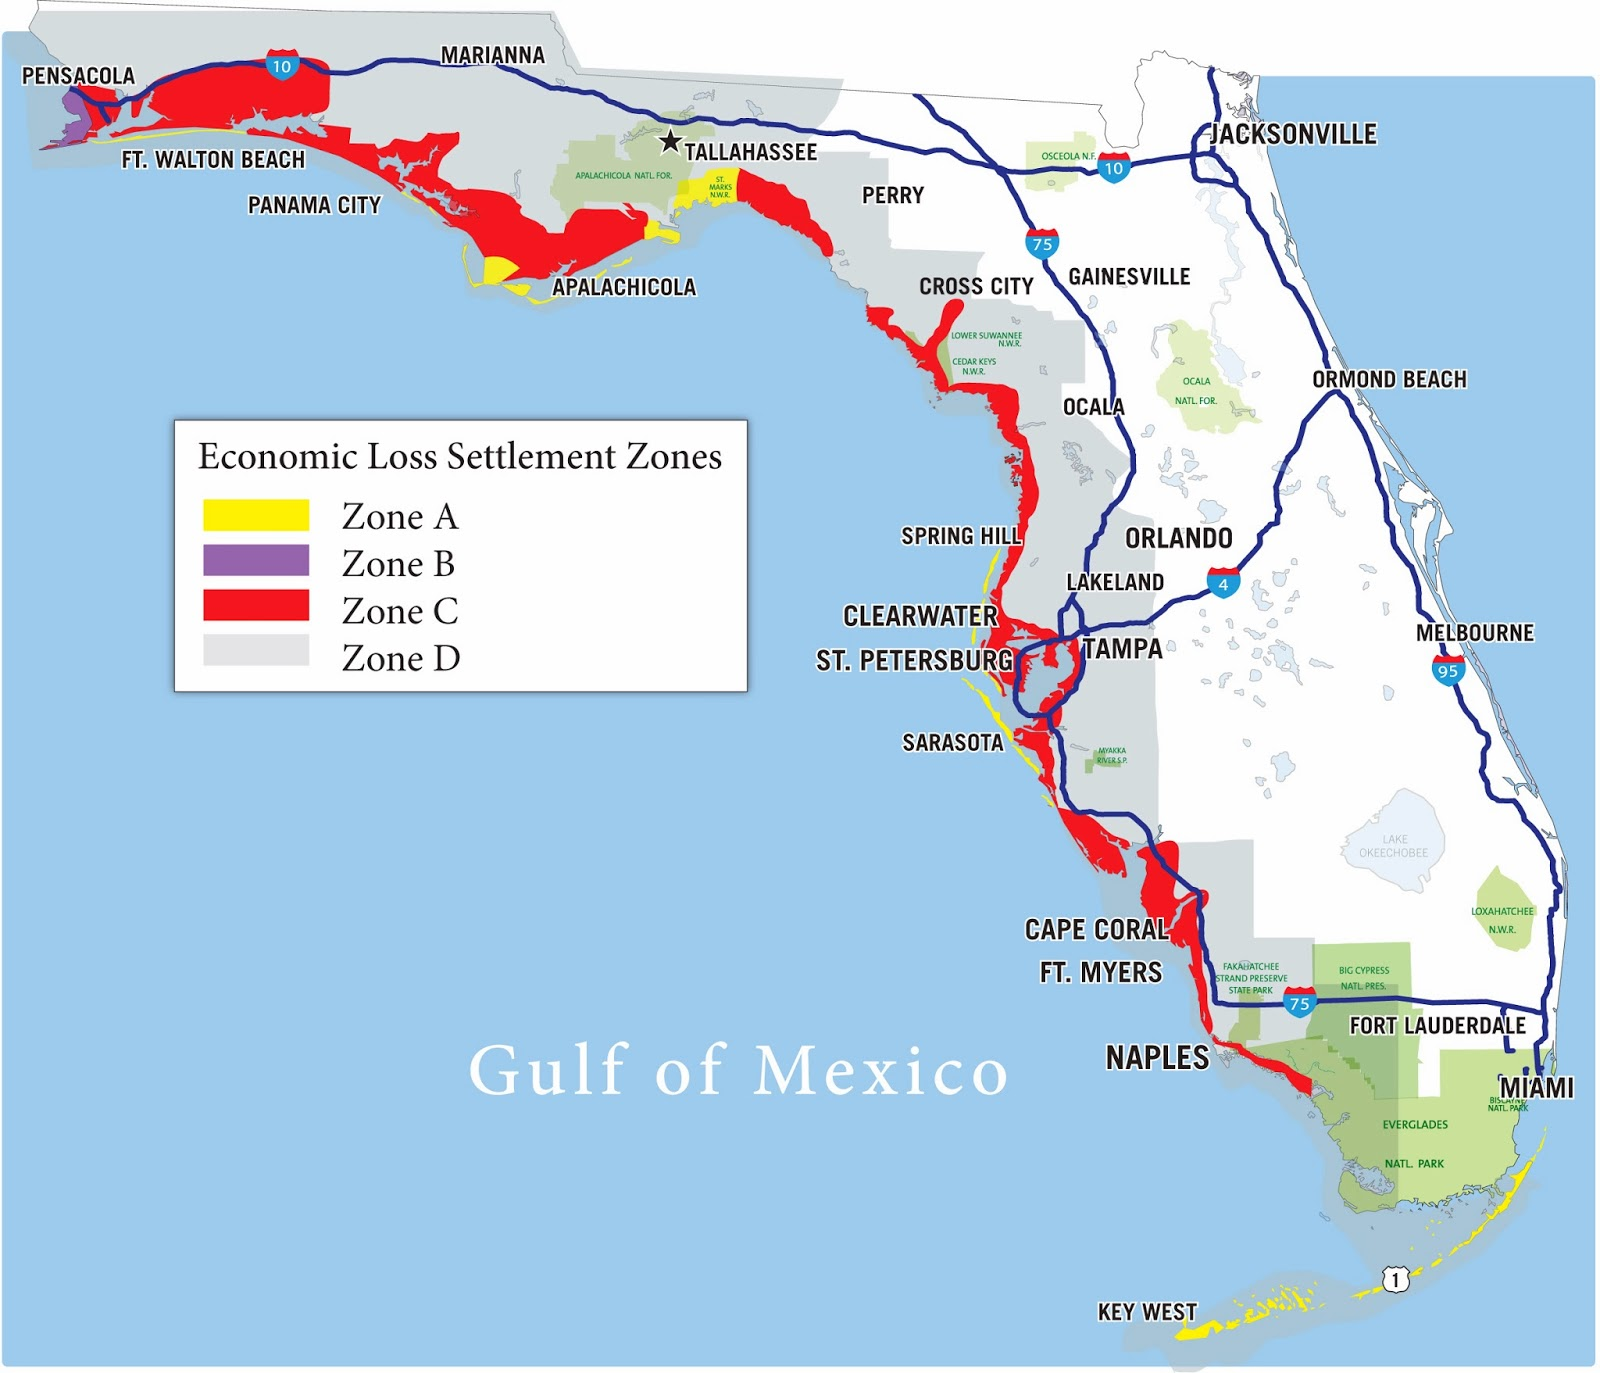 Map Of Florida Showing Clearwater.Clearwater Flood Zones Florida Flood Zone Map Bnhspine